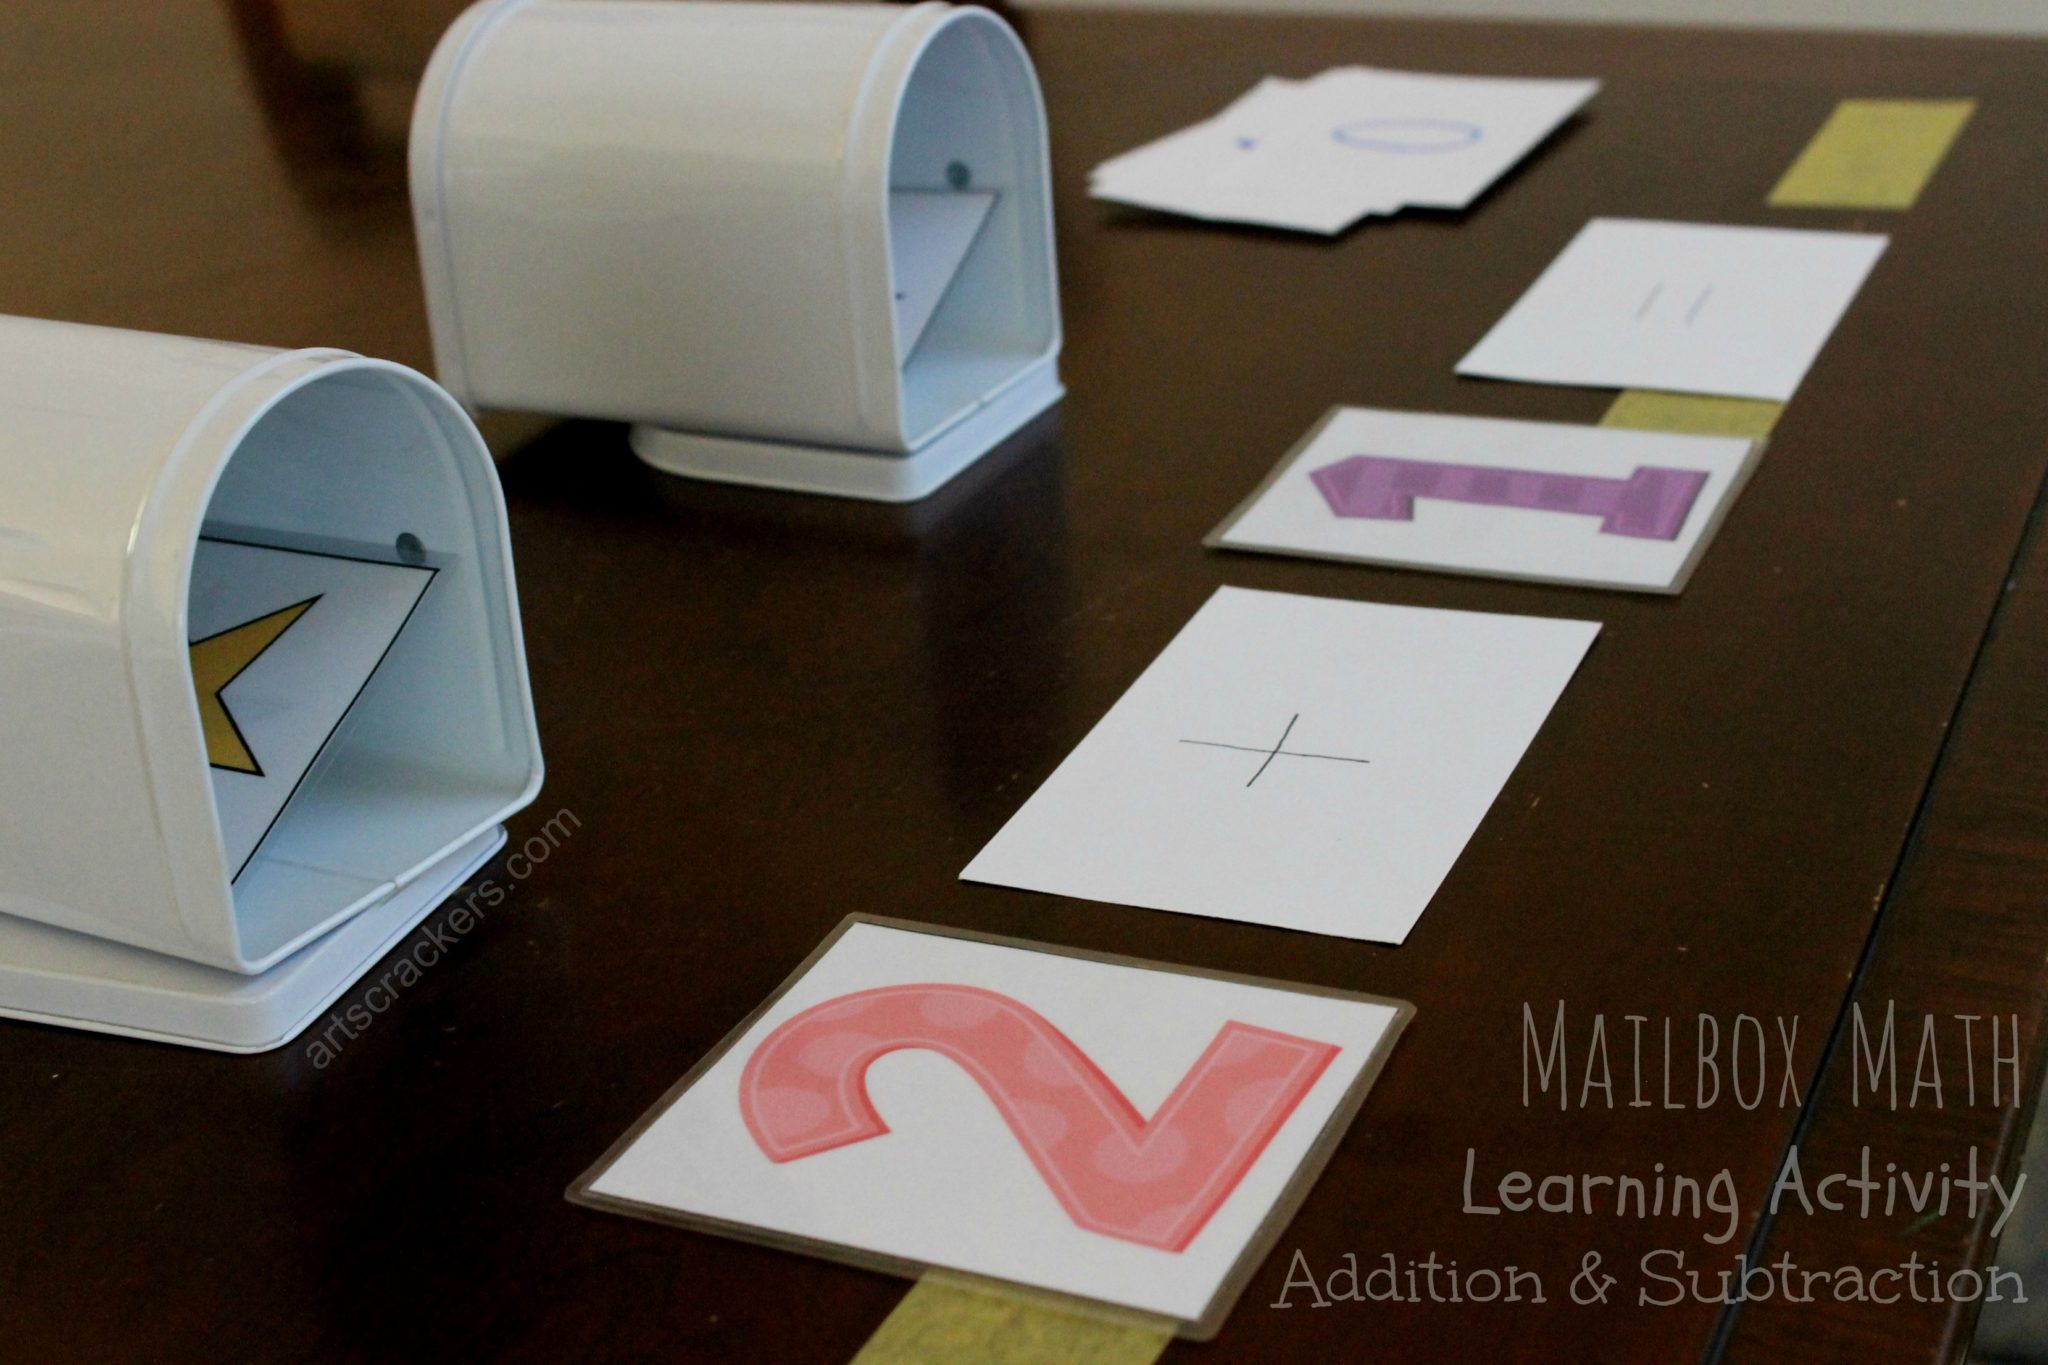 Mailbox Math Learning Activity Addition and Subtraction. Click the picture to view the instructions.